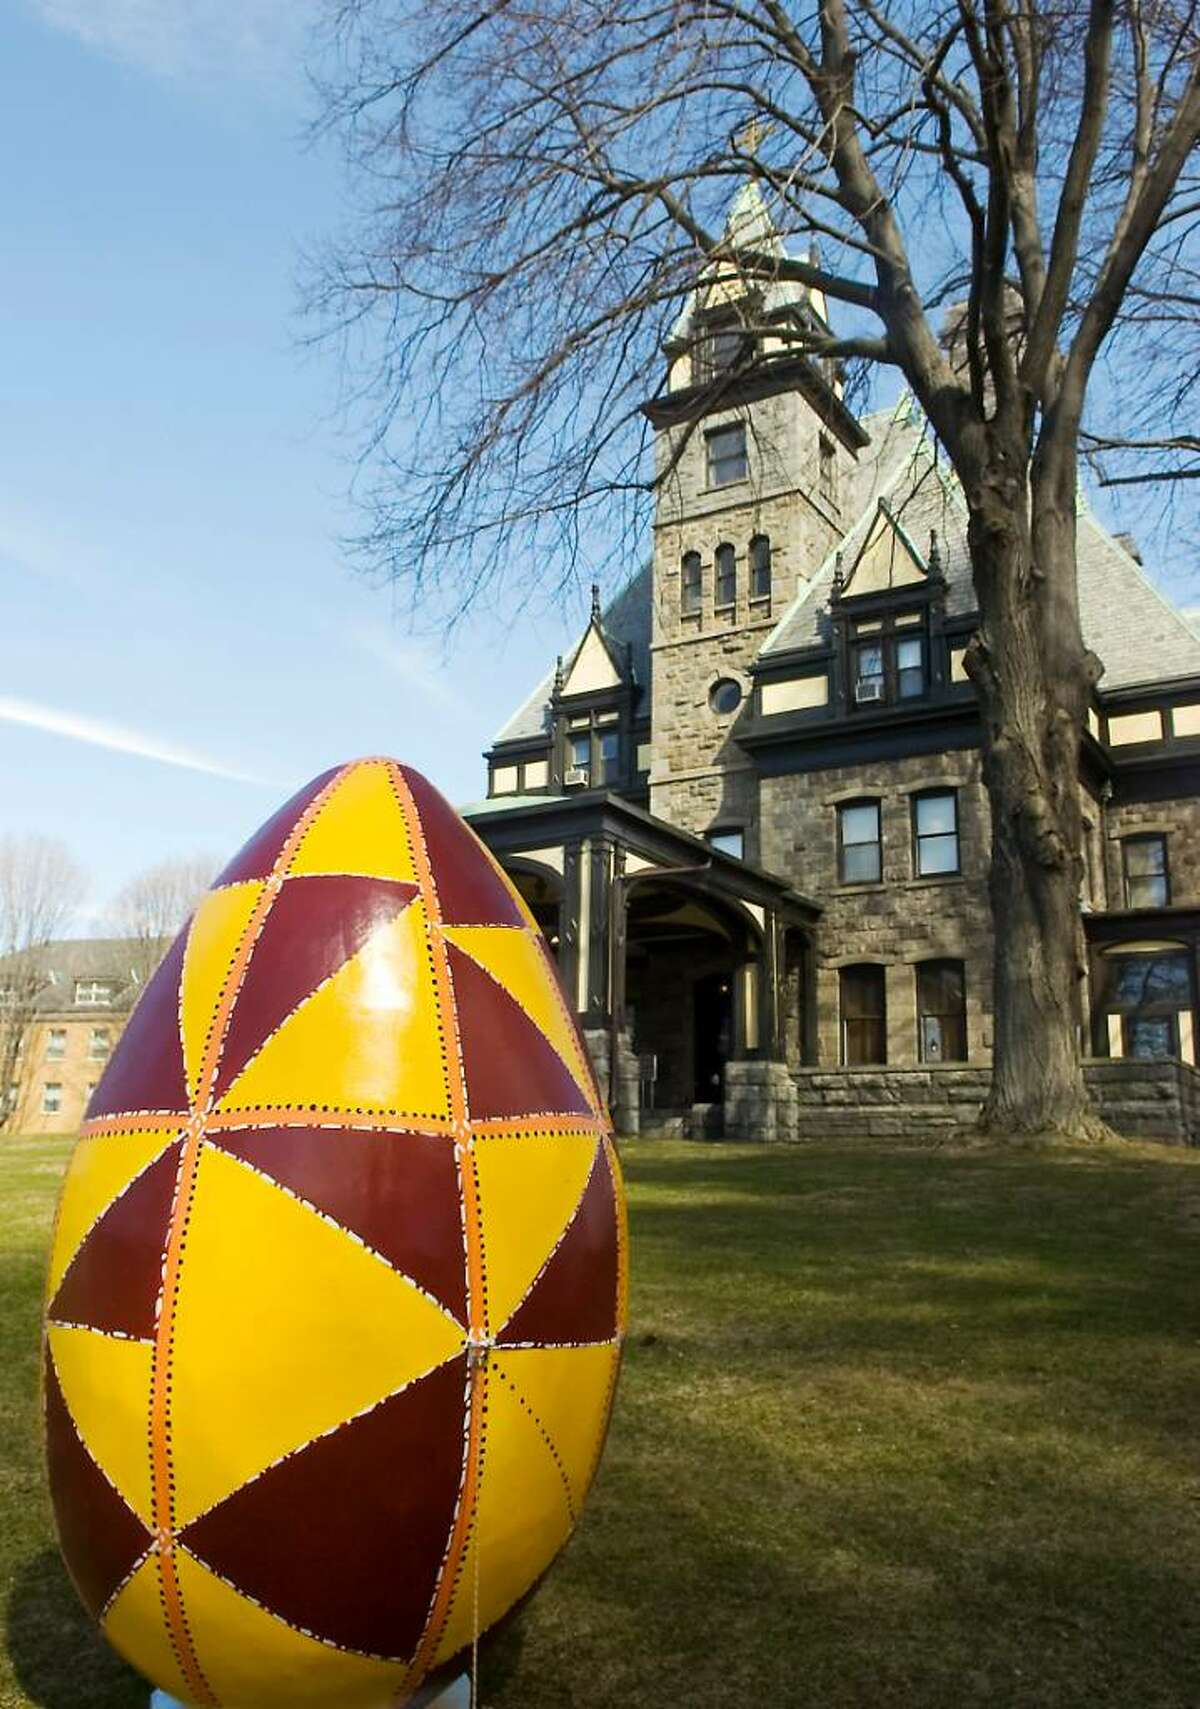 """The Ukrainian Museum and Library of Stamford presents """"Pysanka, The Ukrainian Easter Egg"""" exhibit in Stamford, Conn. on Thursday, March 18, 2010."""